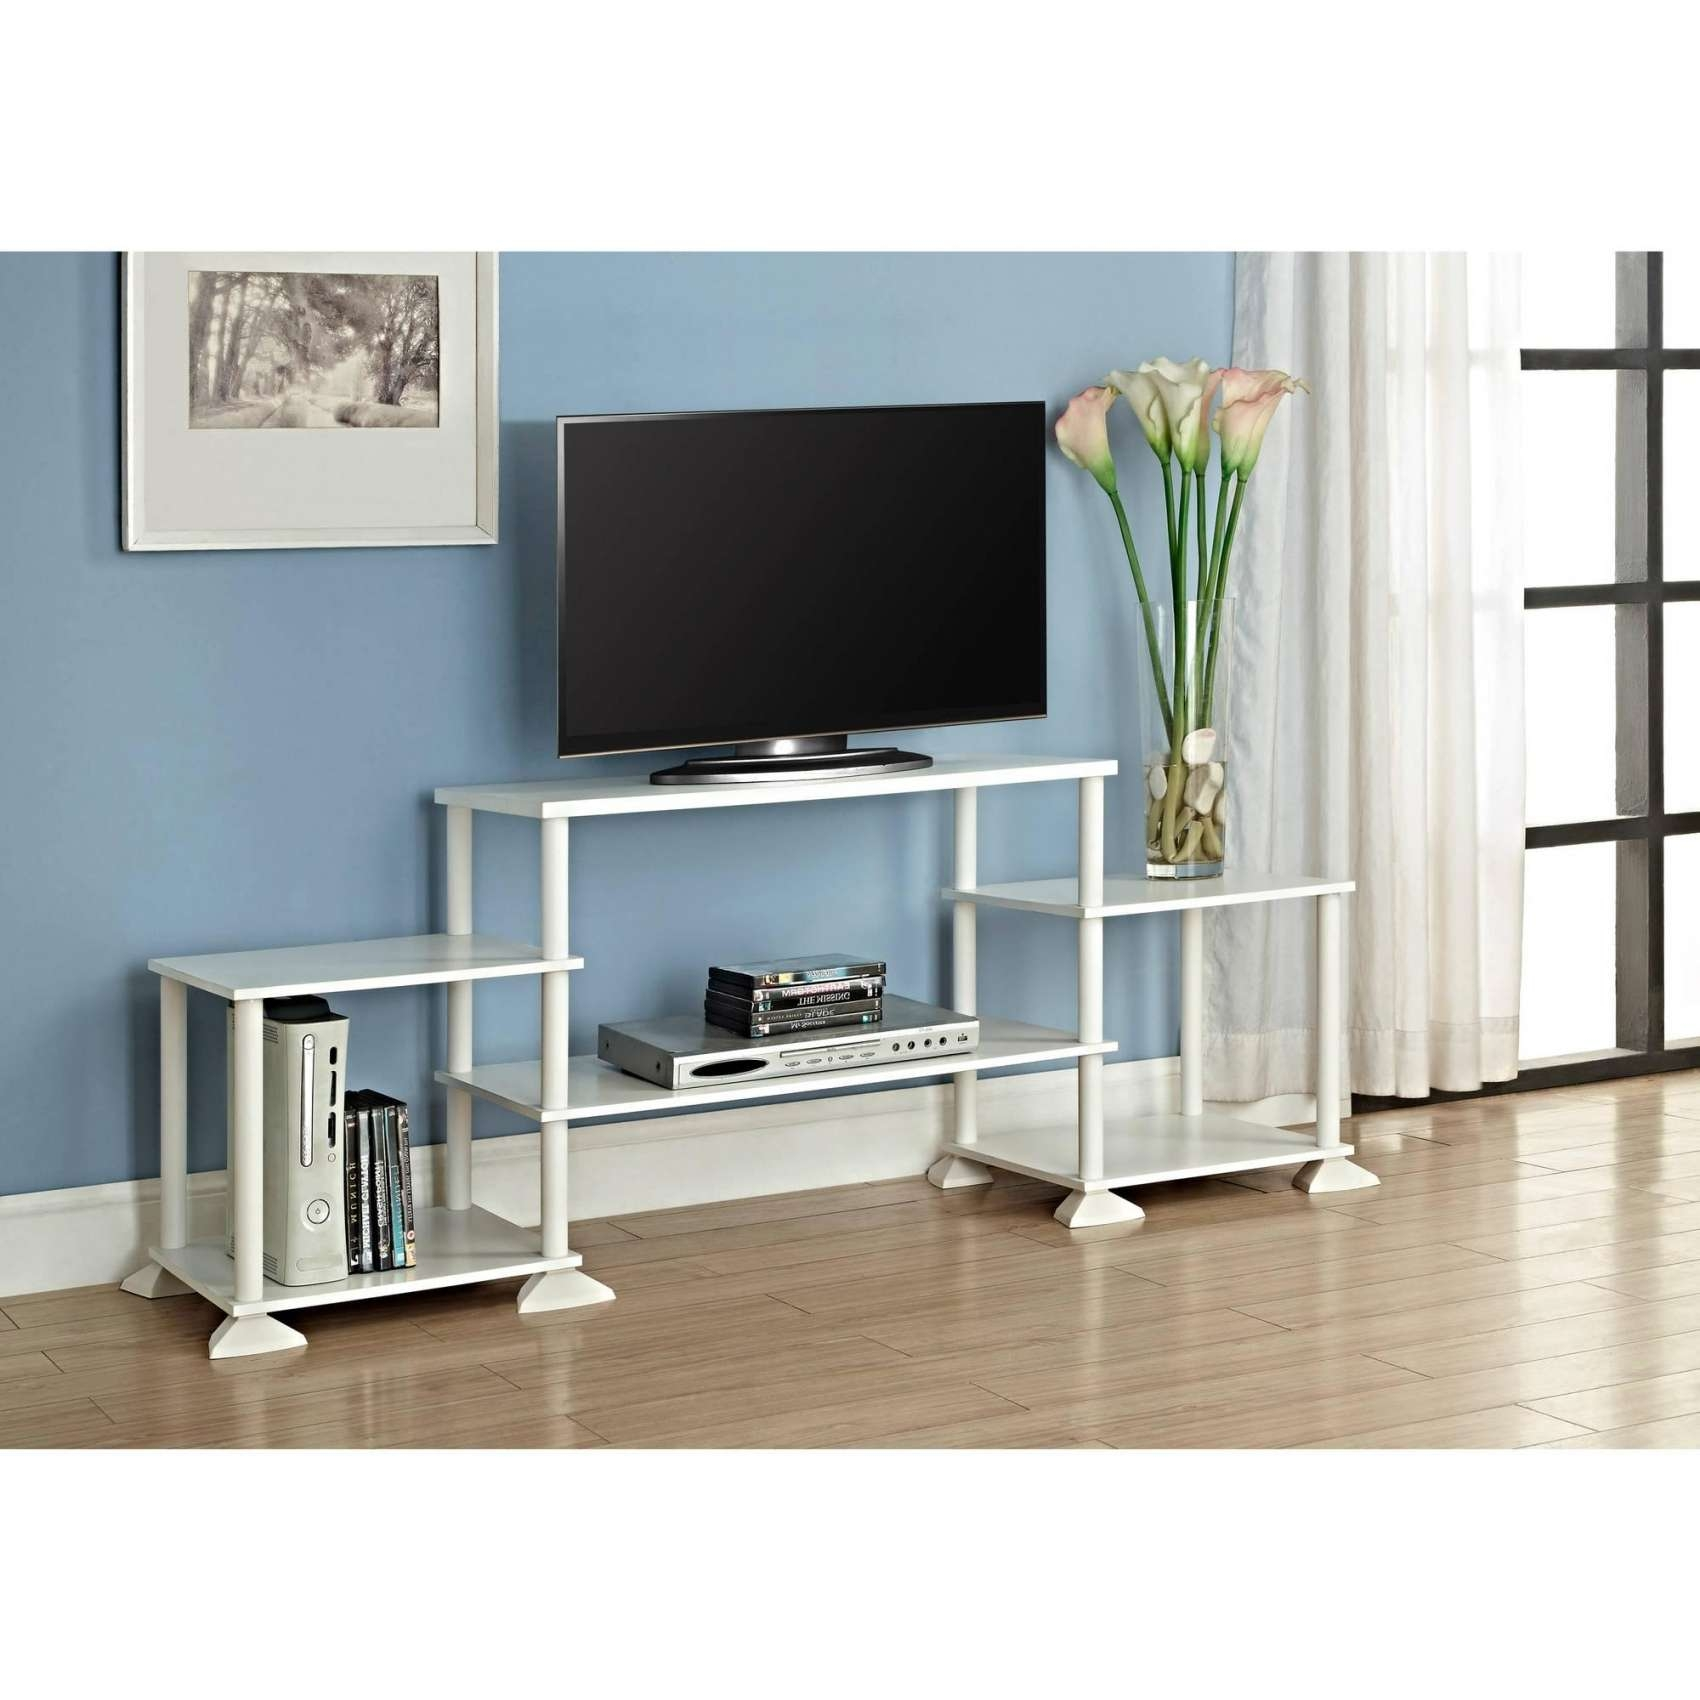 Awesome Tv Stands Cheap Lovely – Best Furniture Gallery With Regard To Cheap White Tv Stands (View 8 of 20)